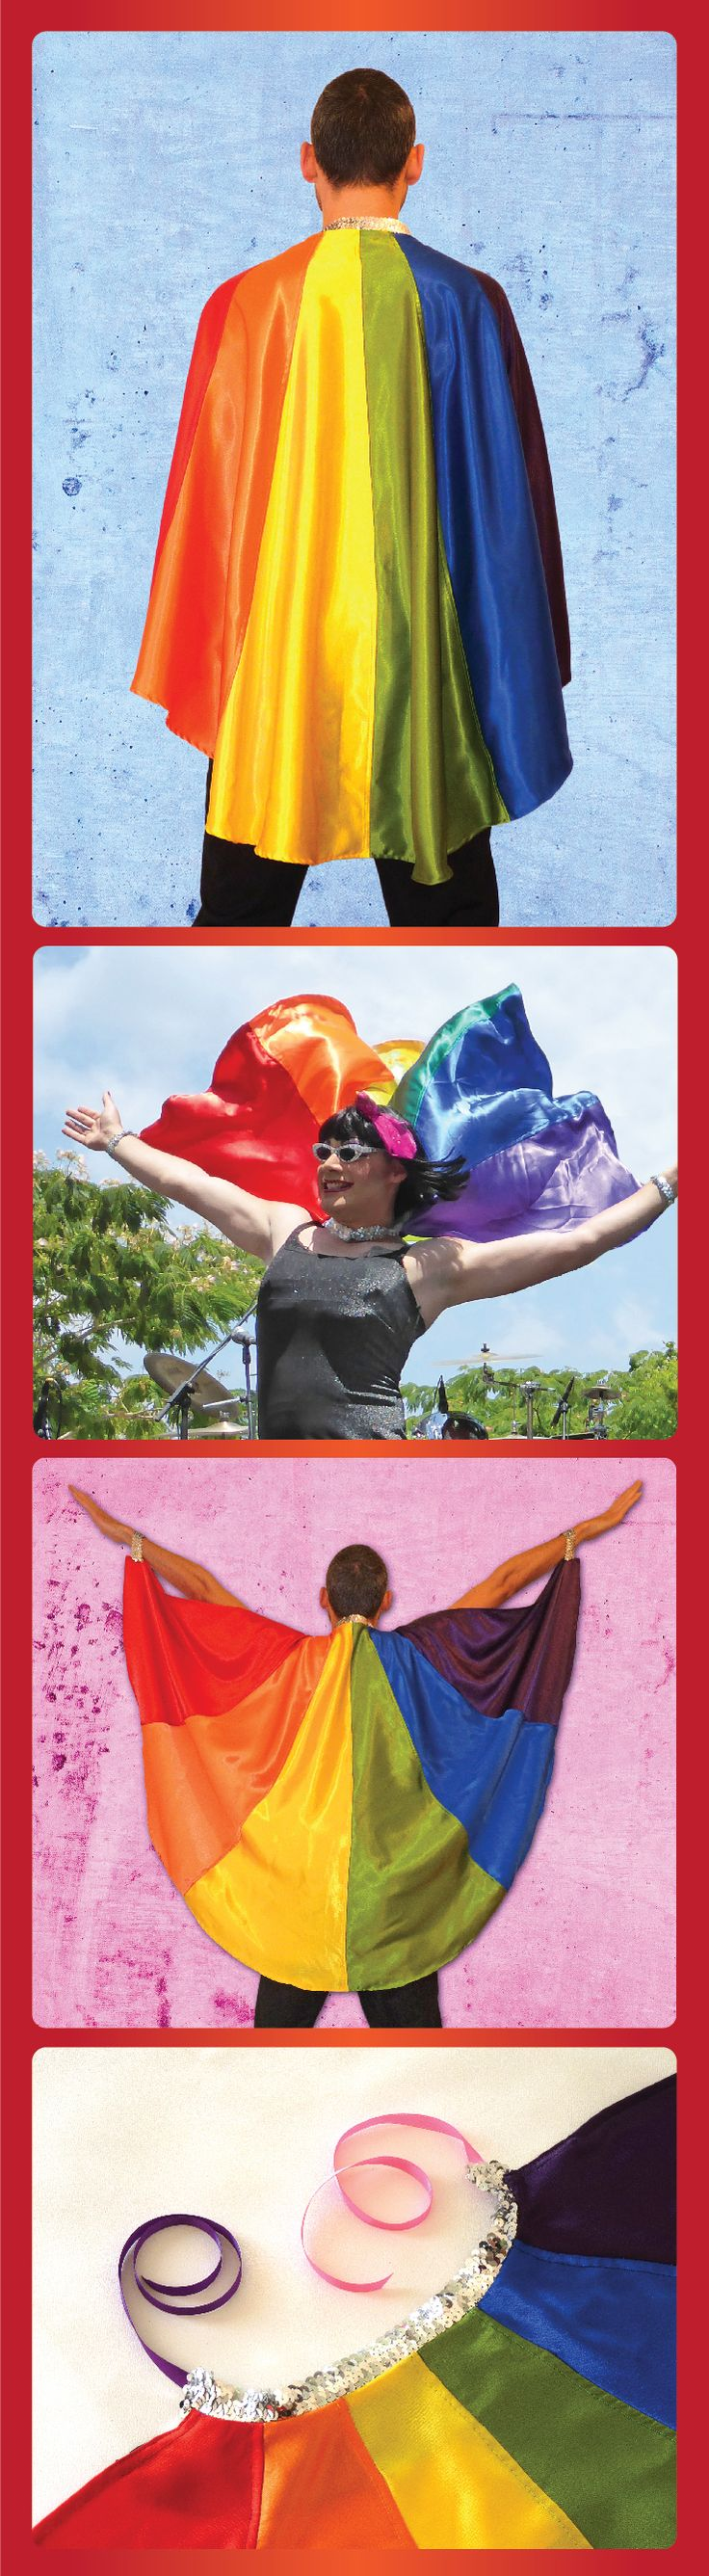 A fabulous colorful pride clothing, gay cape. Rainbow flag pride cape, colorful.  Accessorize with this gay clothing for Pride parades, wear it at parties, wear it at home, demonstrations or other gay events.  LGBT clothing accessories, drag clothing. It is the perfect LGBT Pride outfit for all genders and everything in between! These bright shiny colors will make everyone follow your rainbow. Made from crepe marocain fabric, silver elastic sequin band, satin ribbons to tie around the neck.